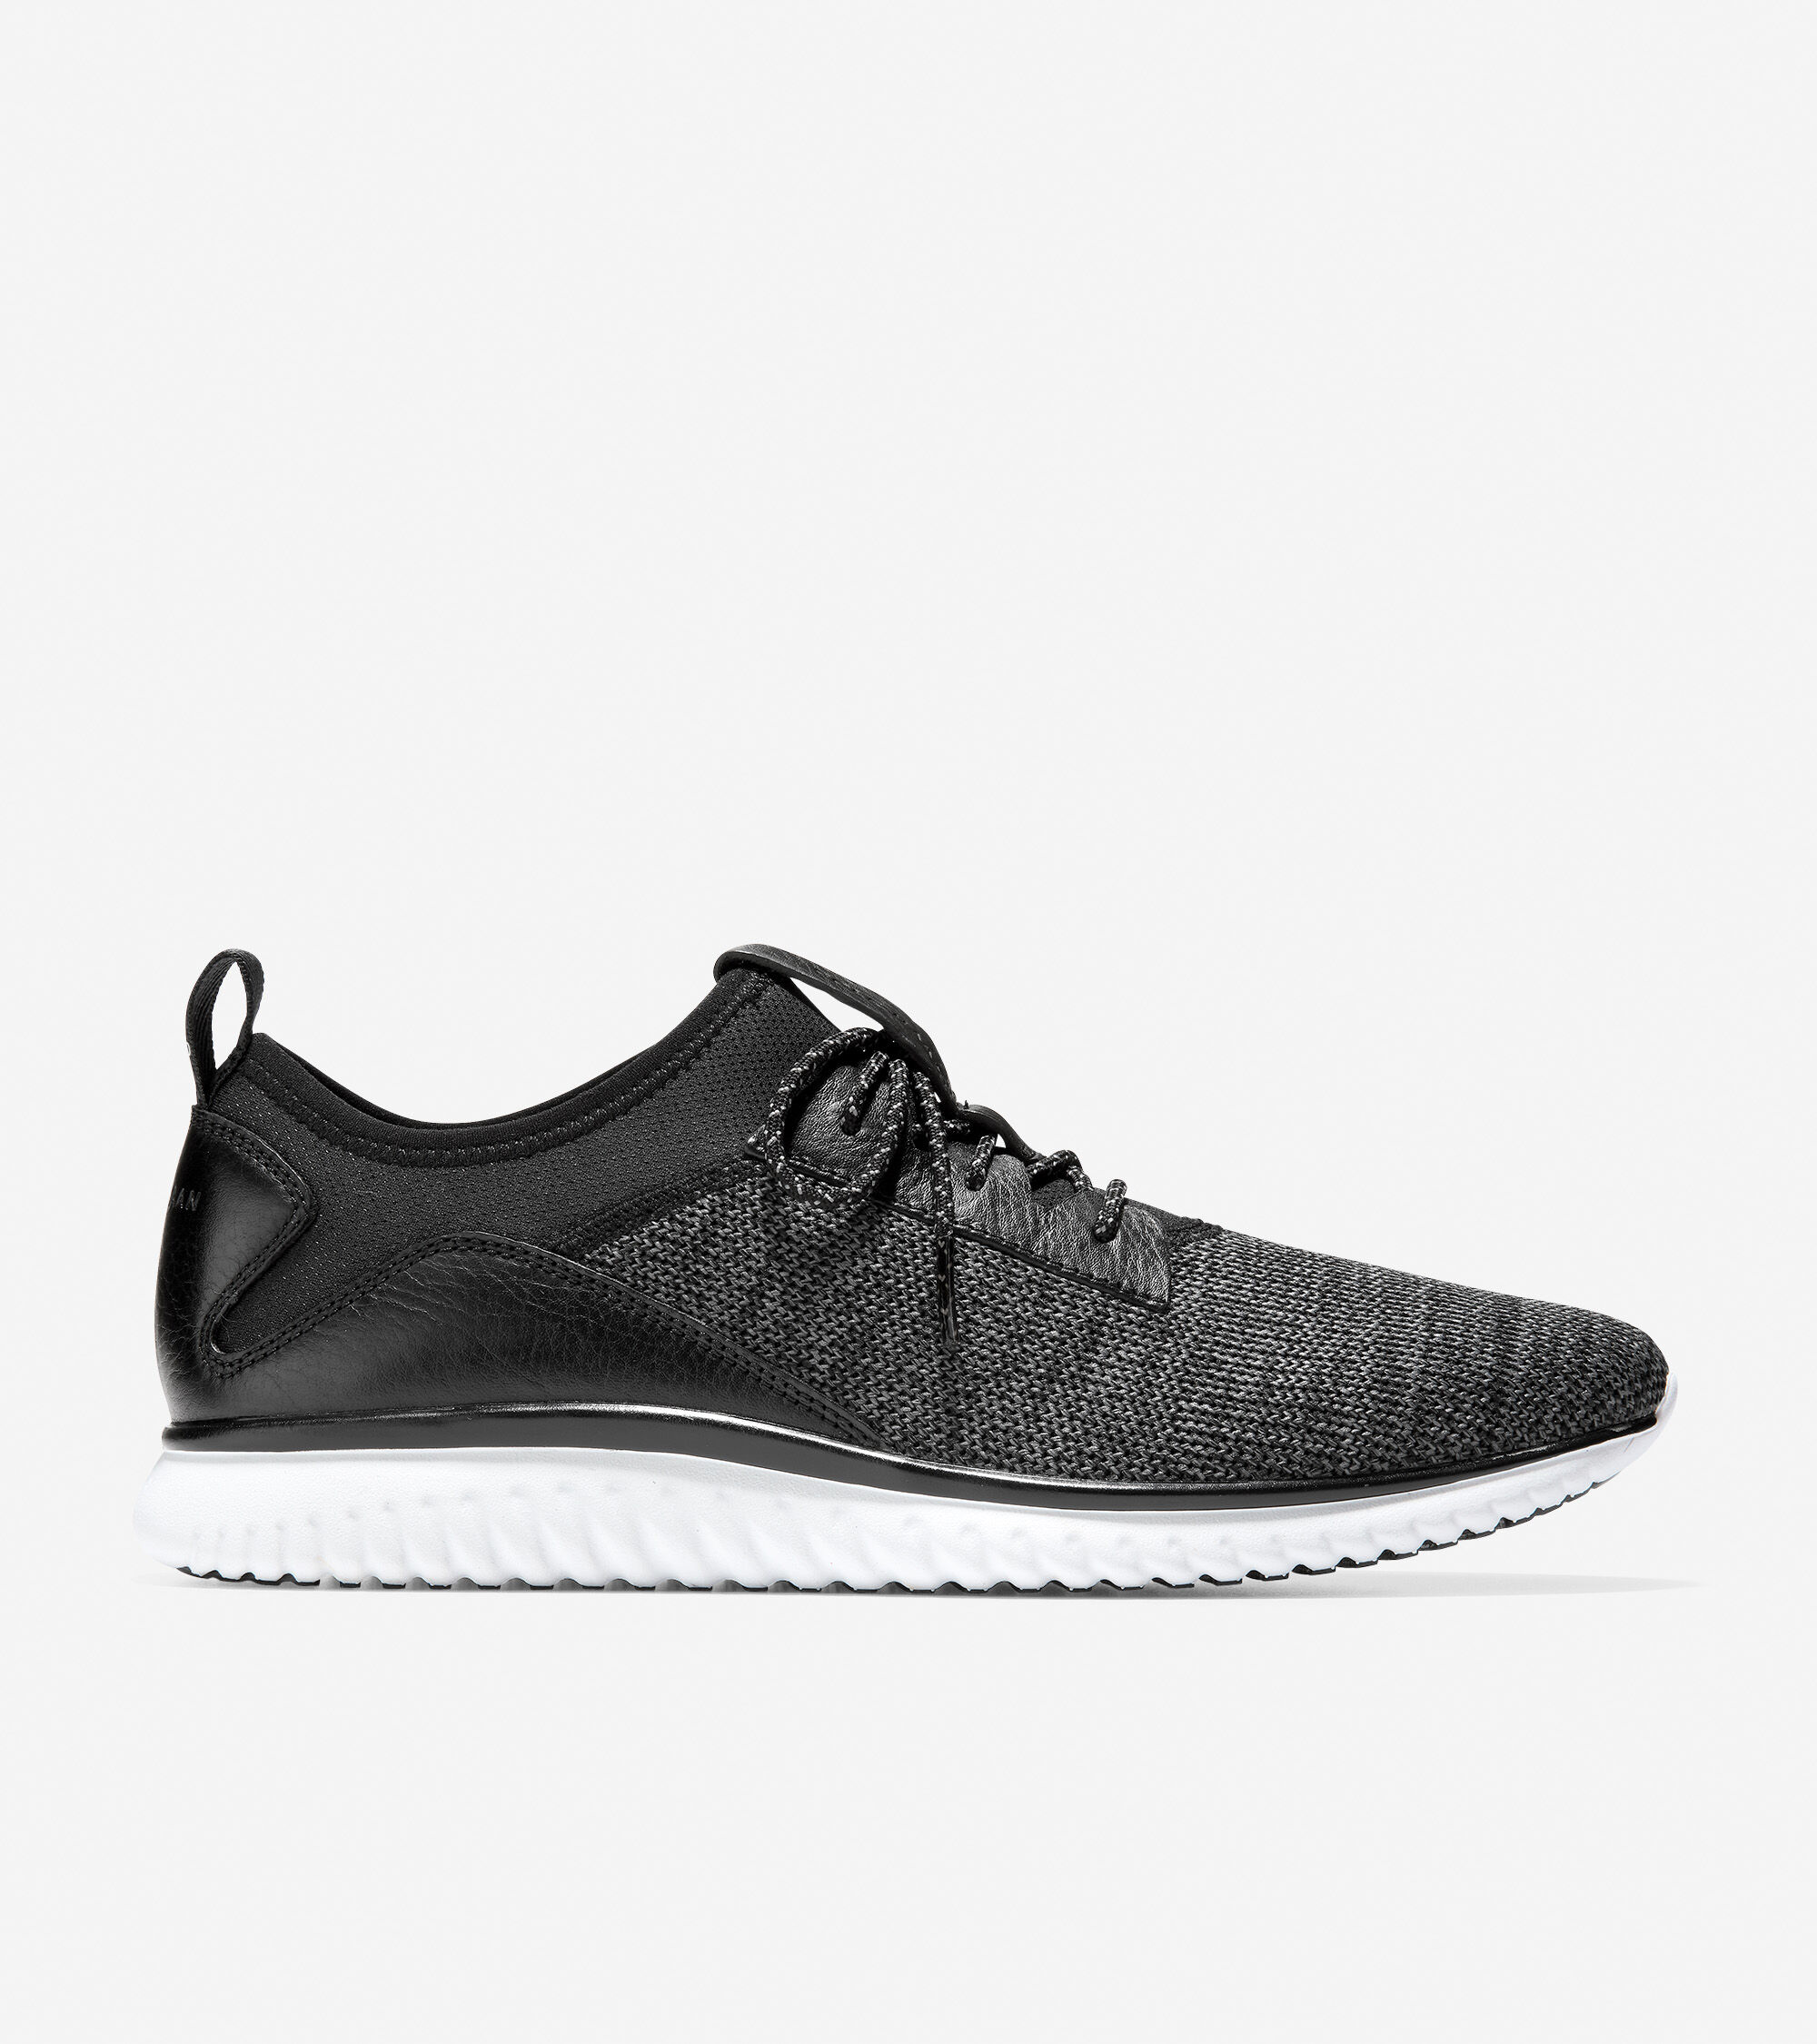 Knit uppers with leather detailing. Cushioned Grand 360 footbed lined in moisture-wicking textile for breathability. EVA Midsole with a rubber outsole for traction and comfort.